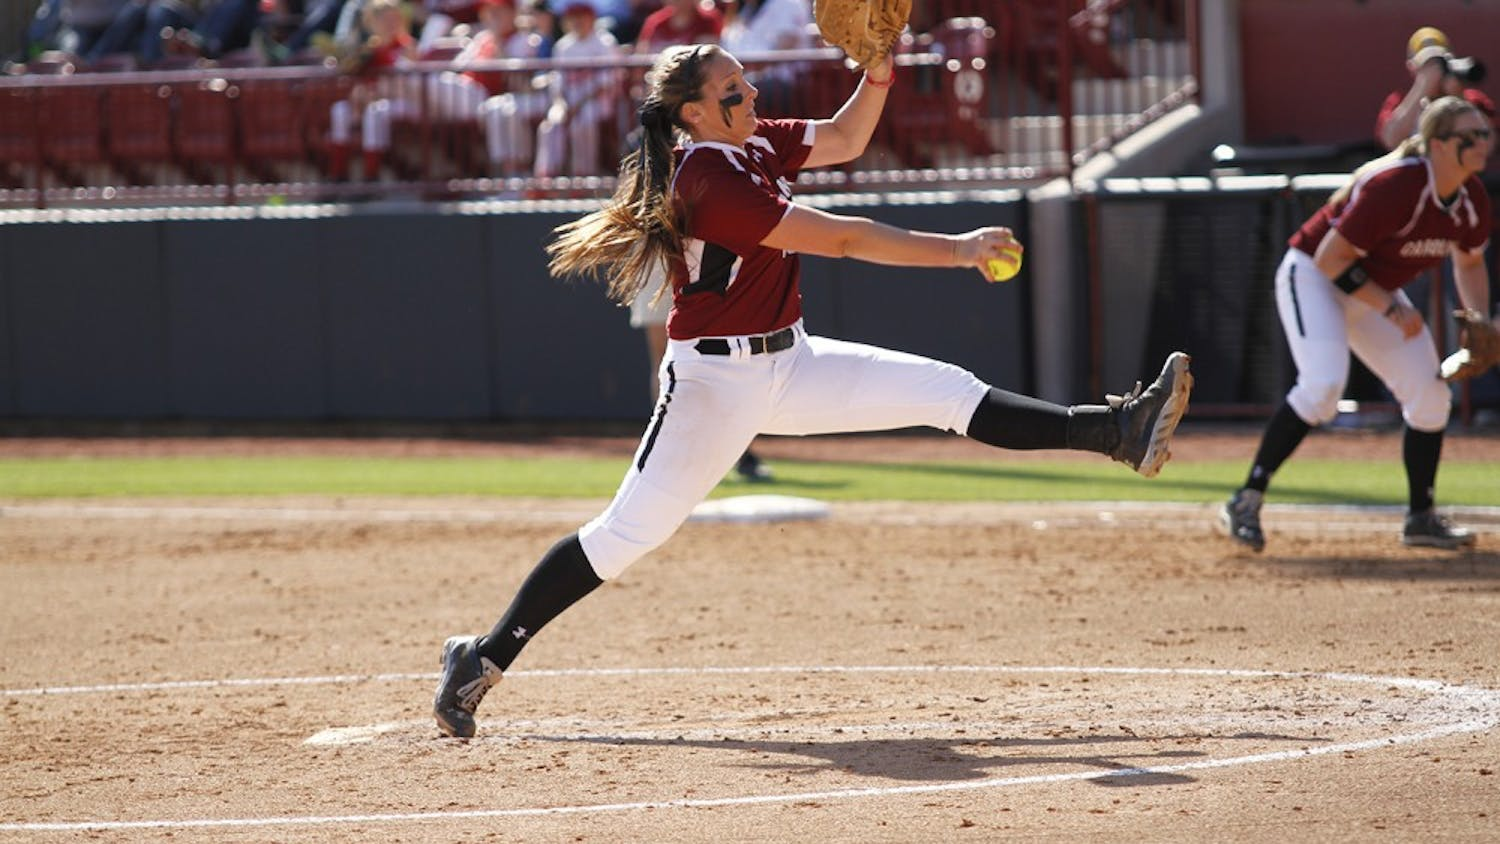 USC pitcher Julie Sarratt allowed just five hits and two runs in the Gamecocks' loss to Georgia on Sunday.